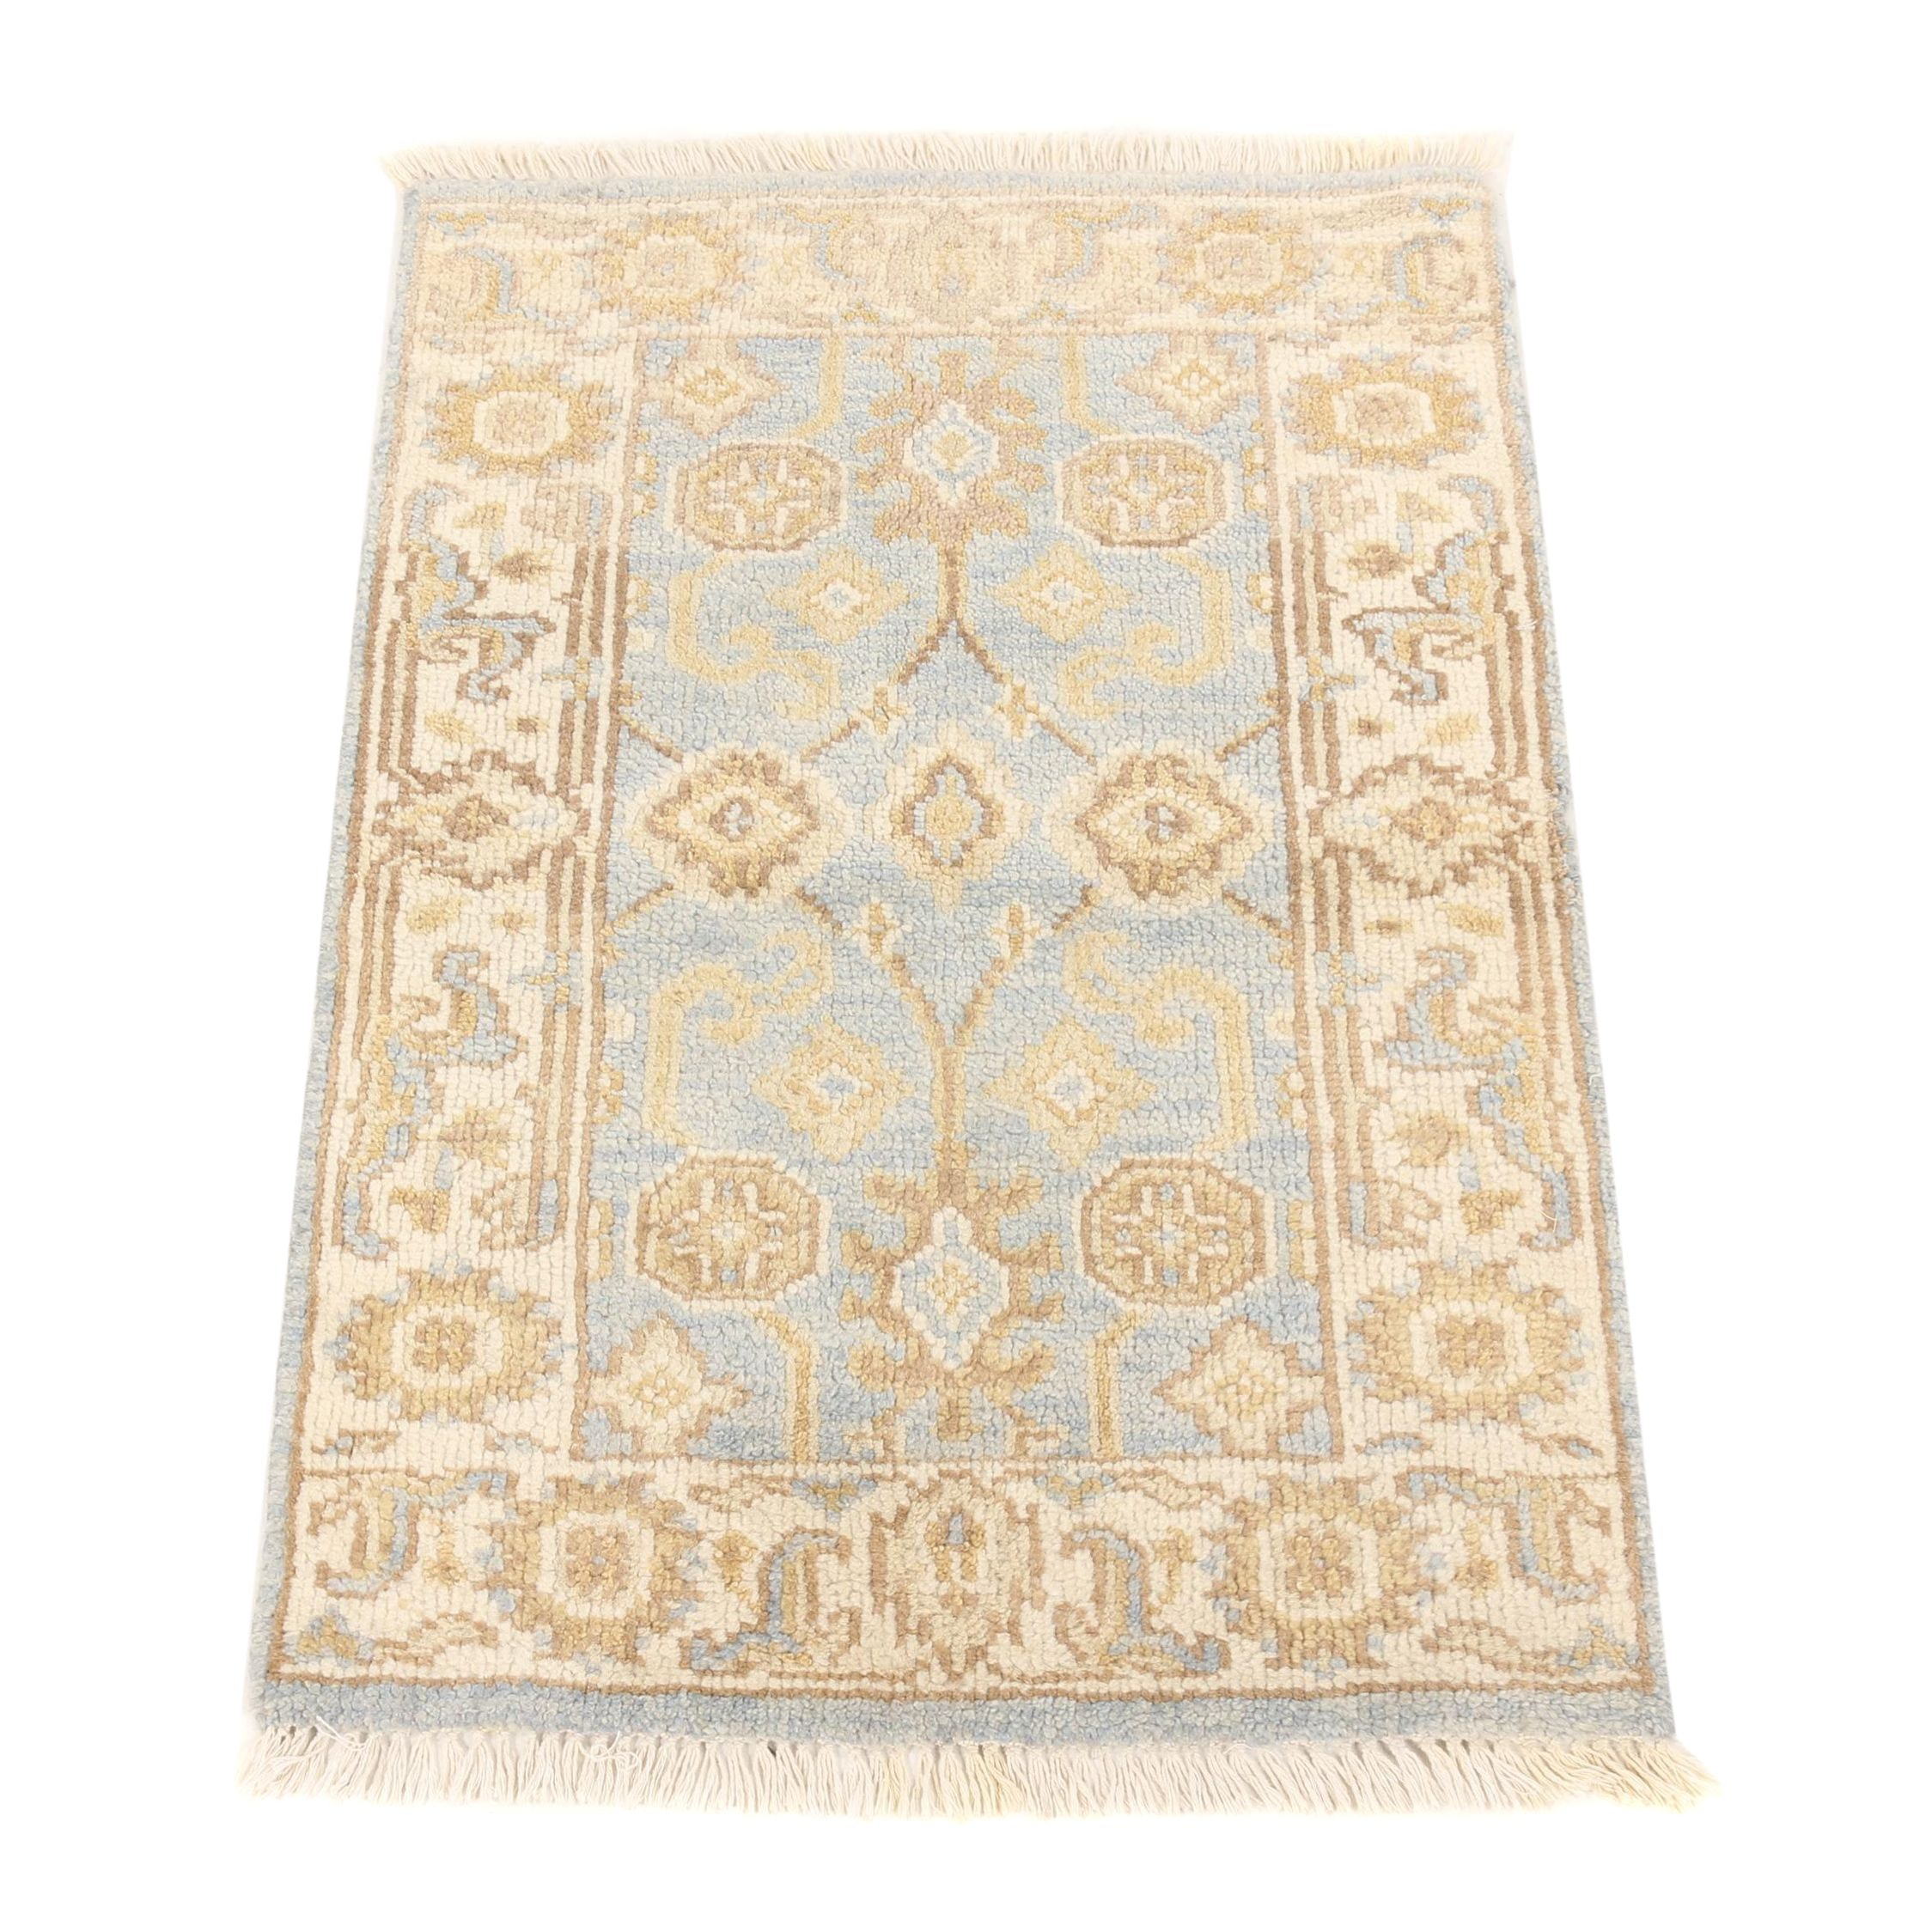 Hand-Knotted Indo-Oushak Wool Rug